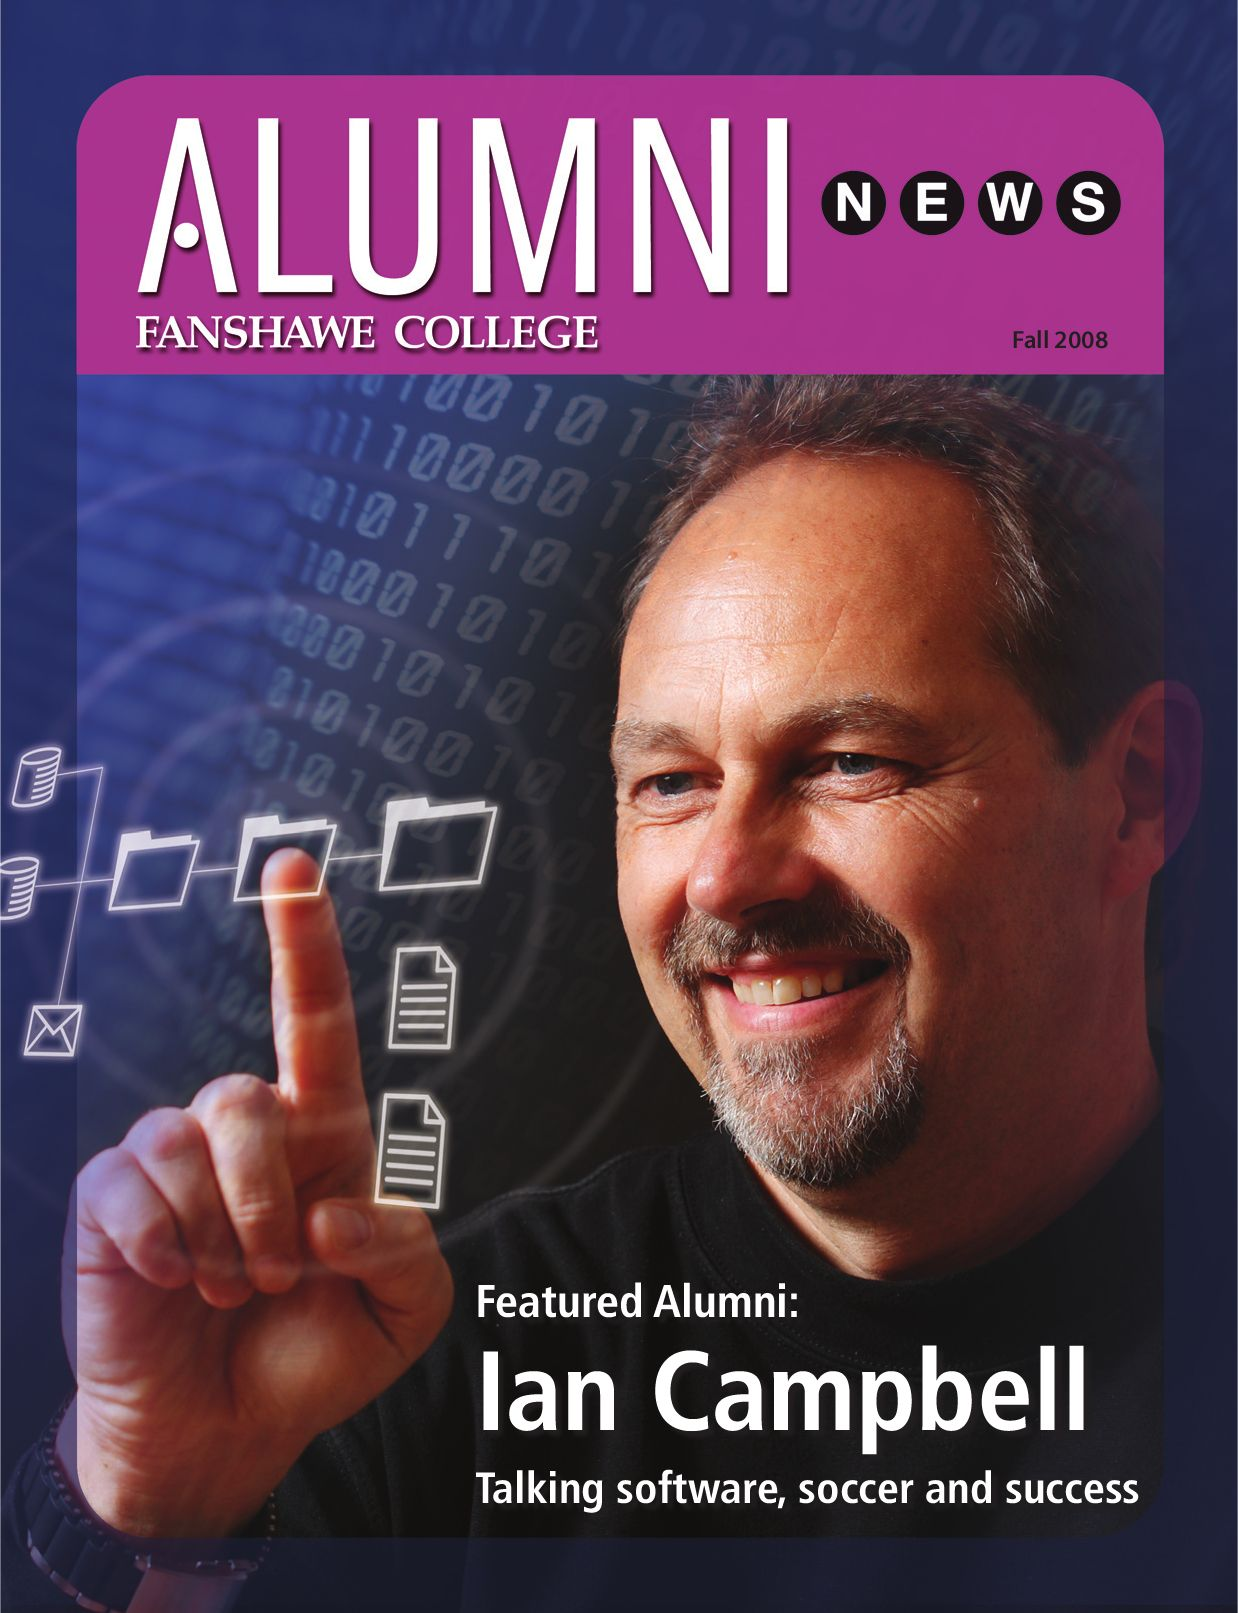 Fanshawe College Alumni News Fall 2008 By Fanshawe Alumni And Advancement Issuu